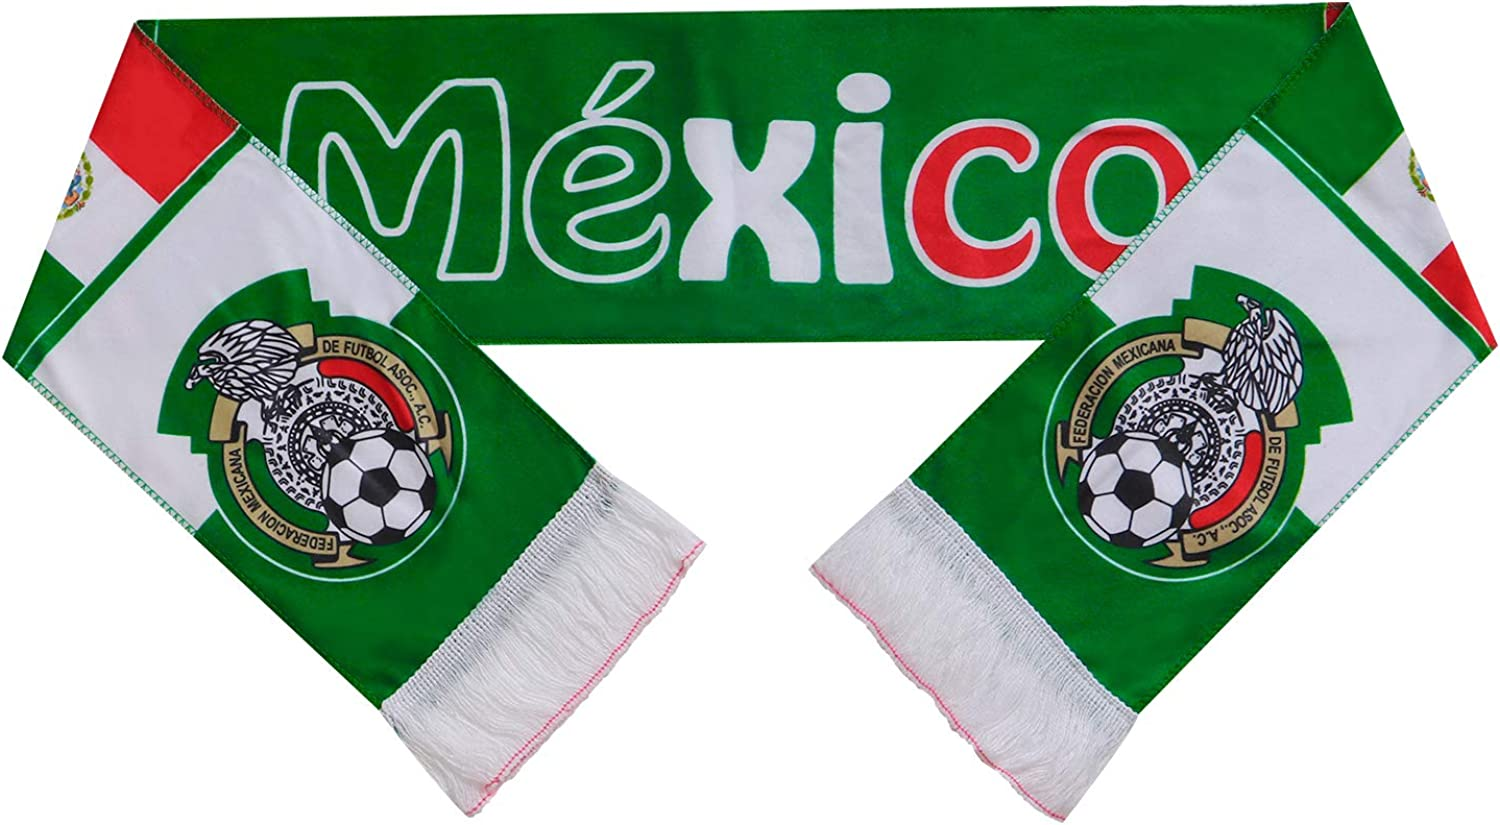 Mexico 2018 World Cup Fans Scarf National Team Scarf Flag Banner Football Cheerleaders Scarves : Clothing